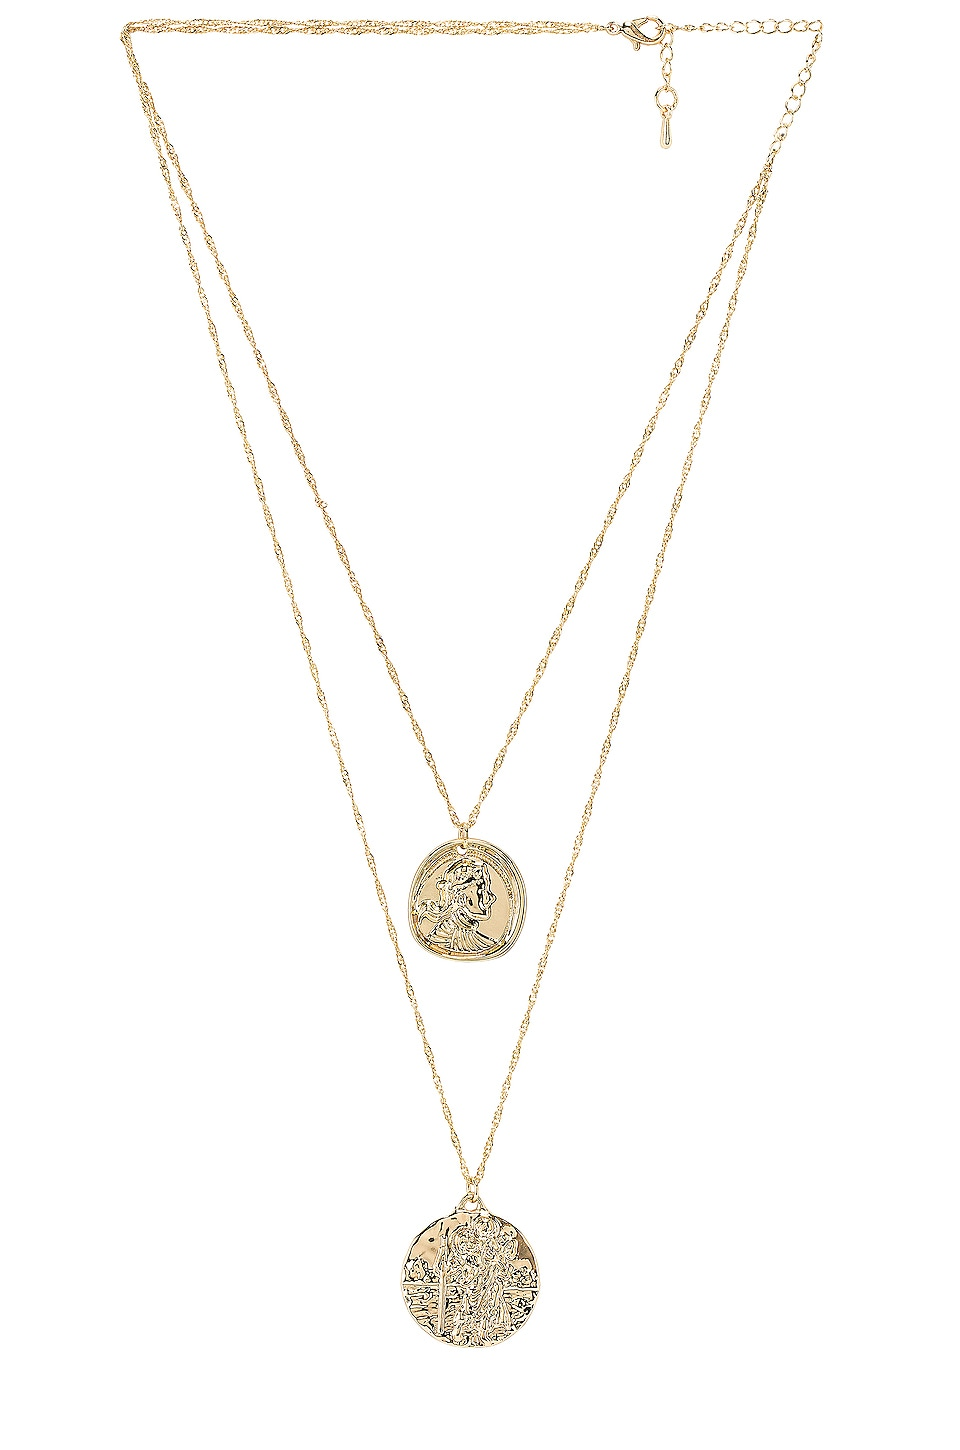 Amber Sceats X REVOLVE Athens Necklace in Gold